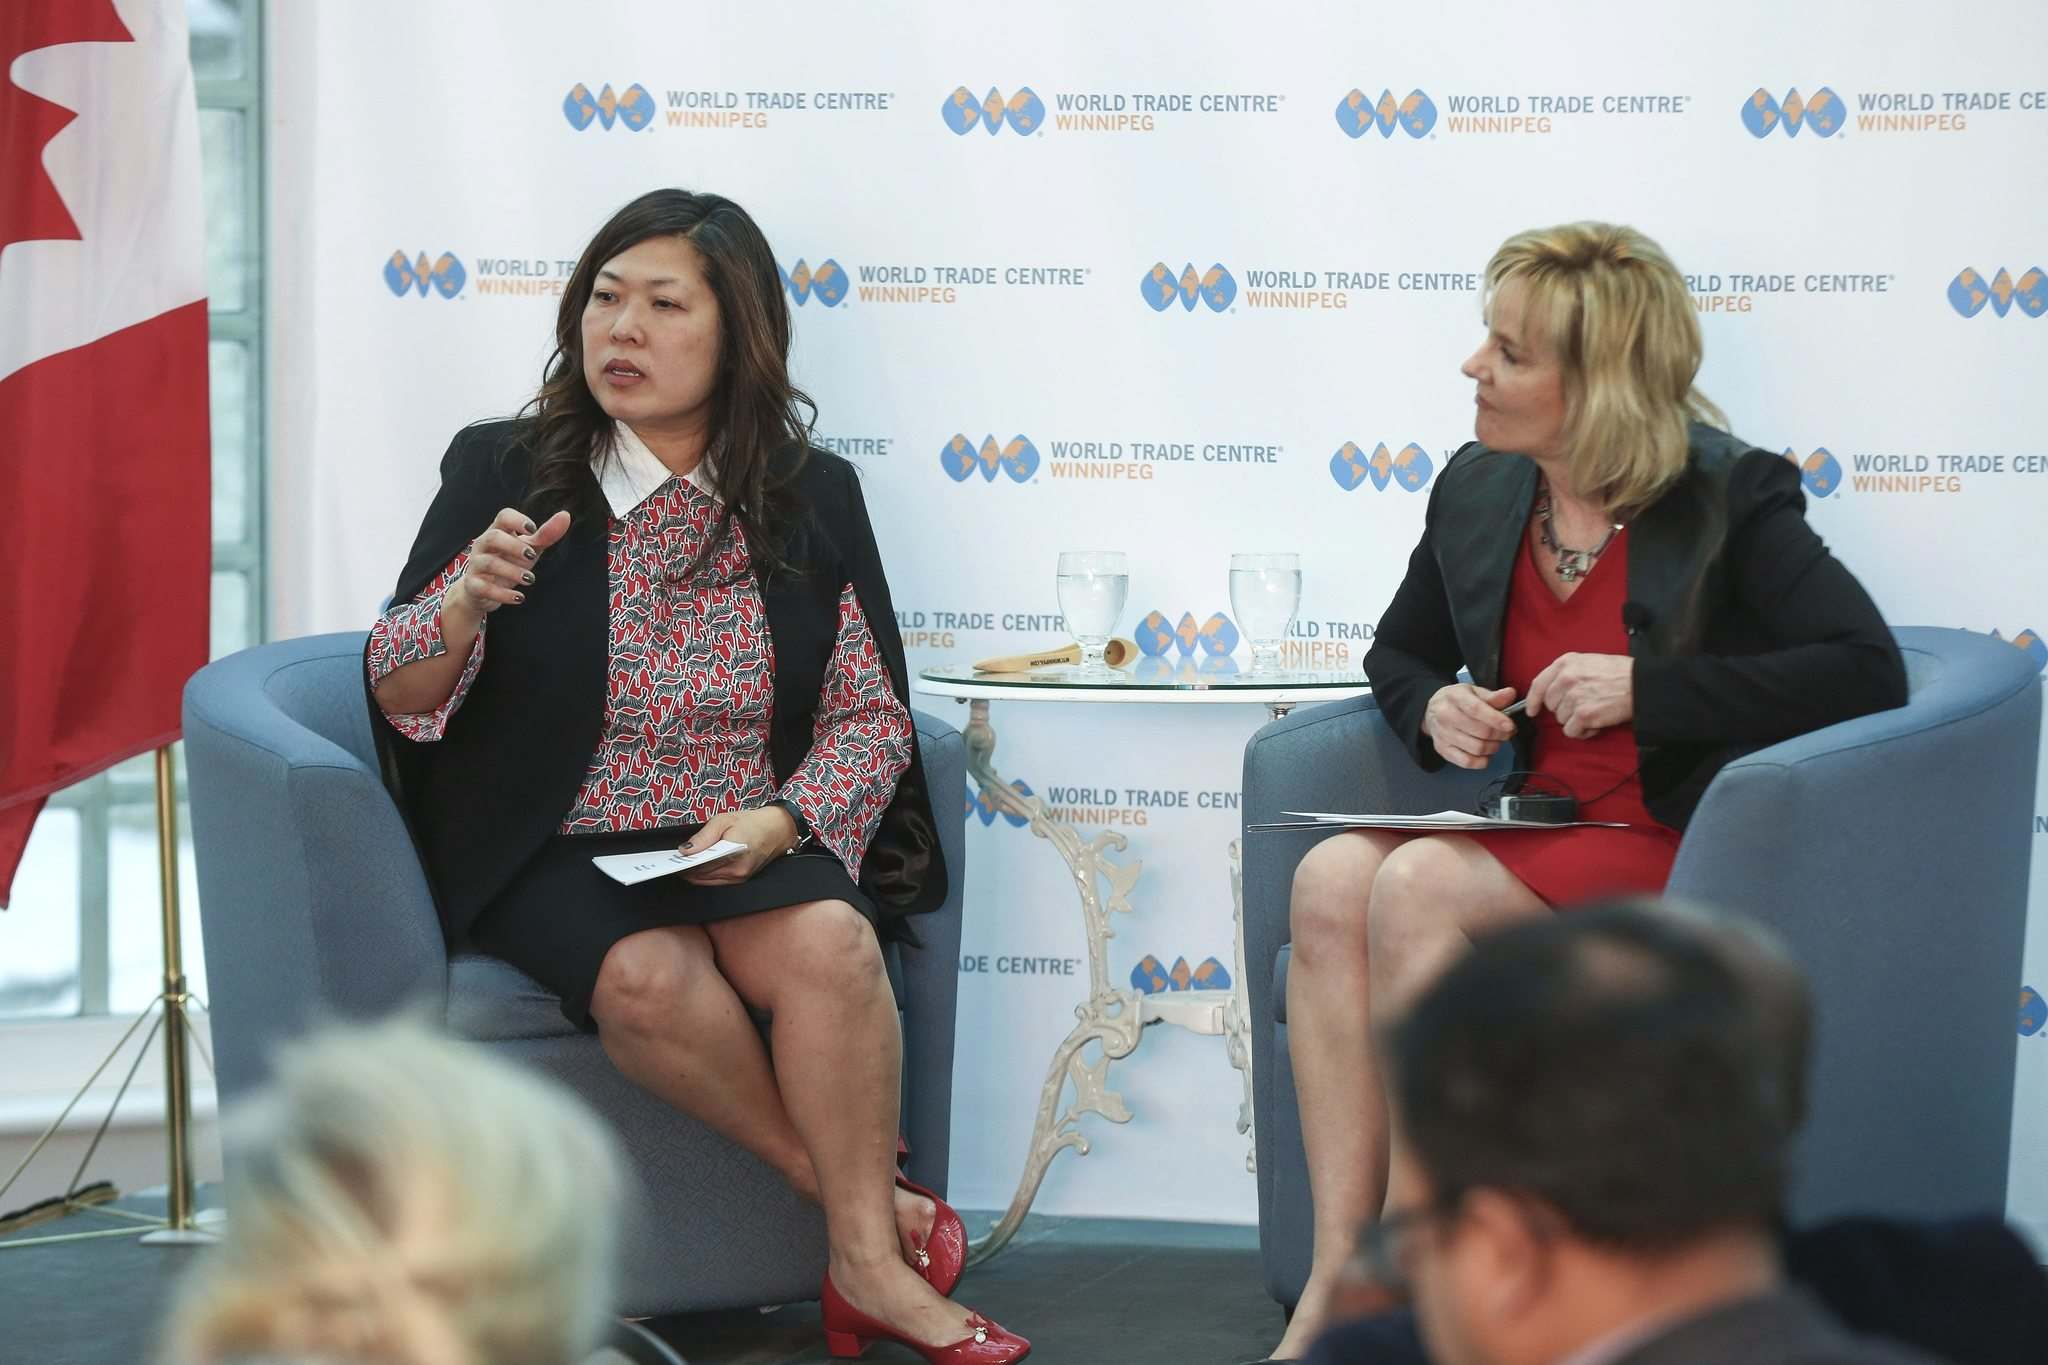 <p>Small Business and Export Promotion Minister Mary Ng, left, speaks at a World Trade Centre Winnipeg event at the Assiniboine Park Pavilion on Tuesday. She said Canada aims to increase its exports by 50 per cent by 2025.</p>